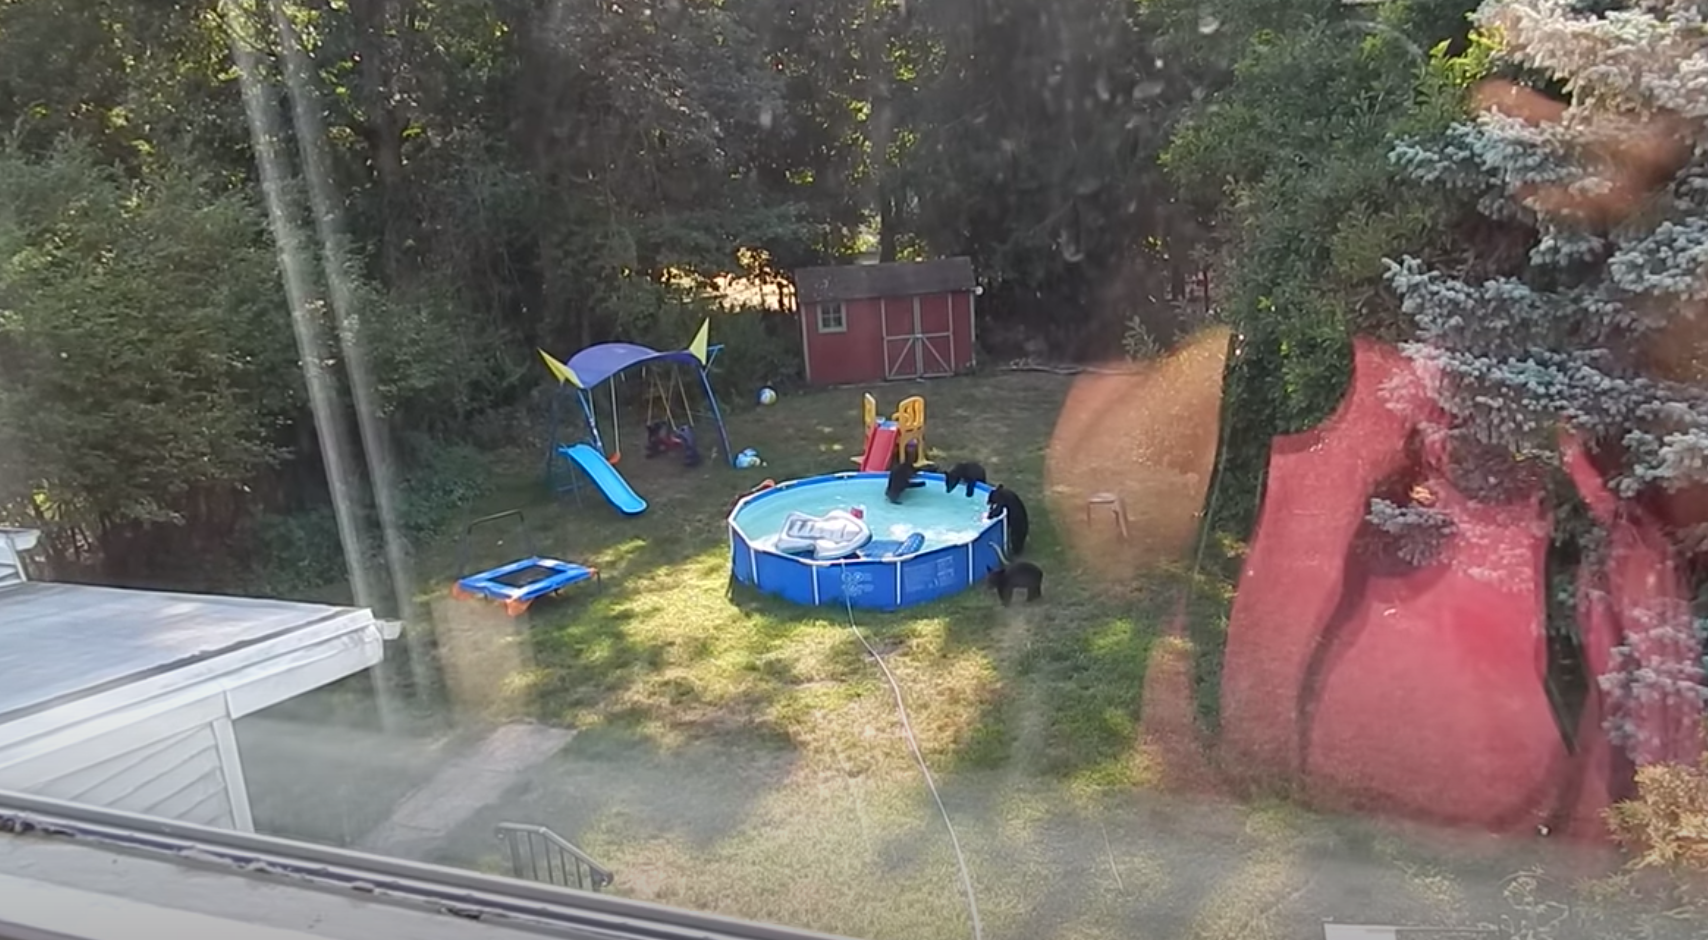 Momma bear and cubs caught having a backyard pool party